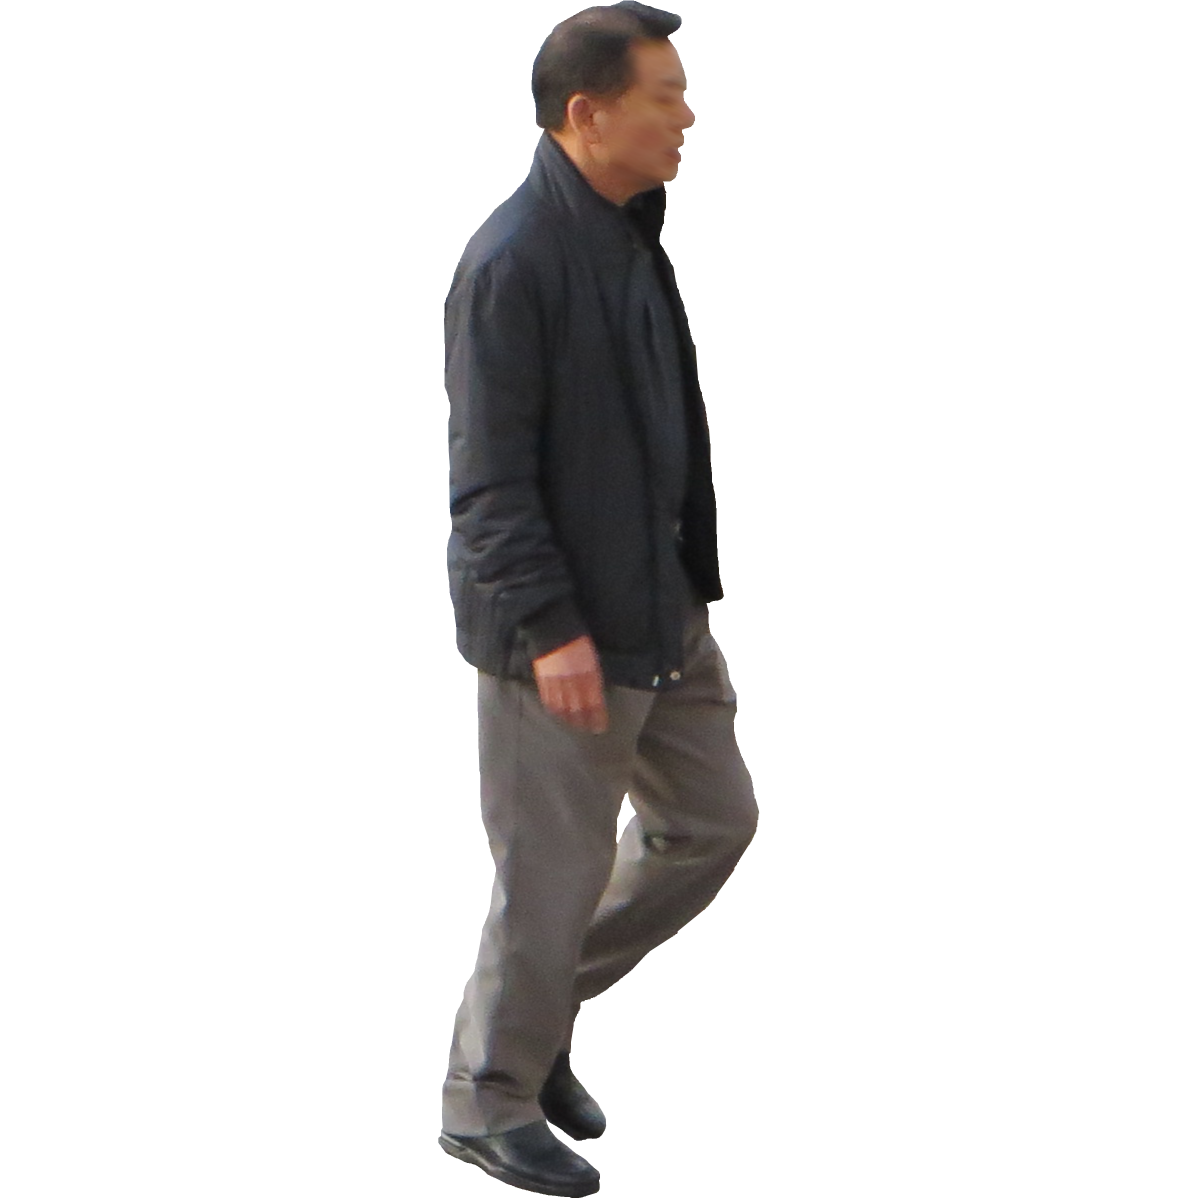 Girl walking away png. Person transparent images pluspng